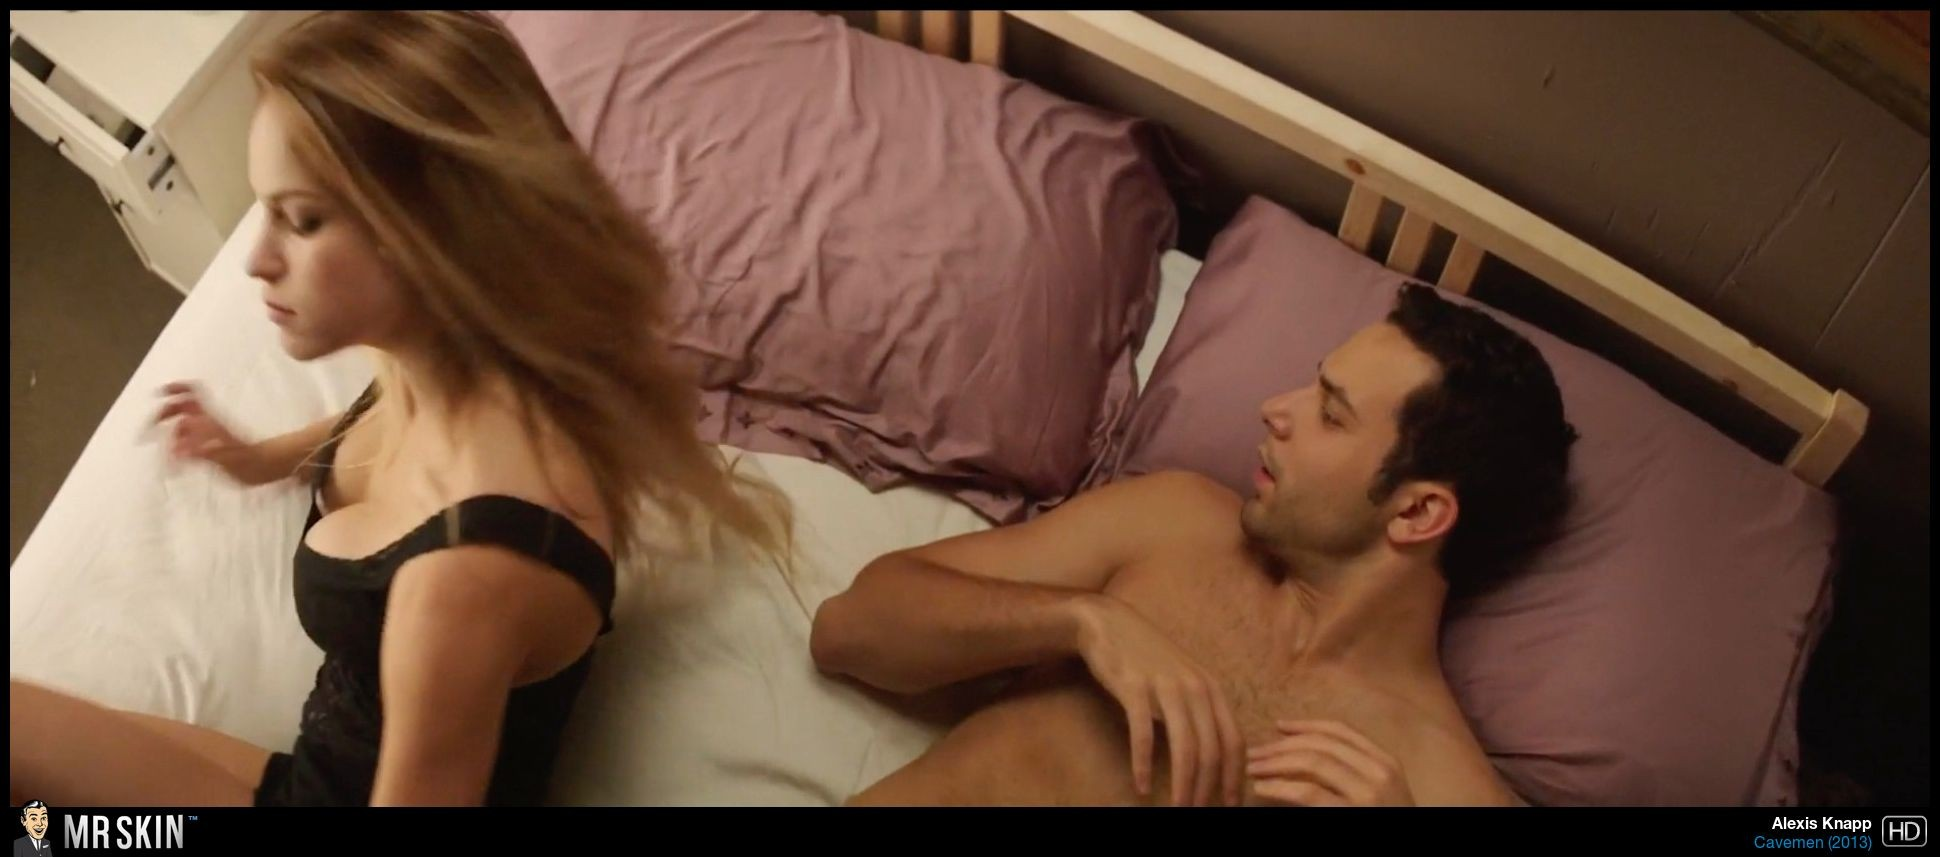 Alexis knapp from project x 1 of 4 - 3 3